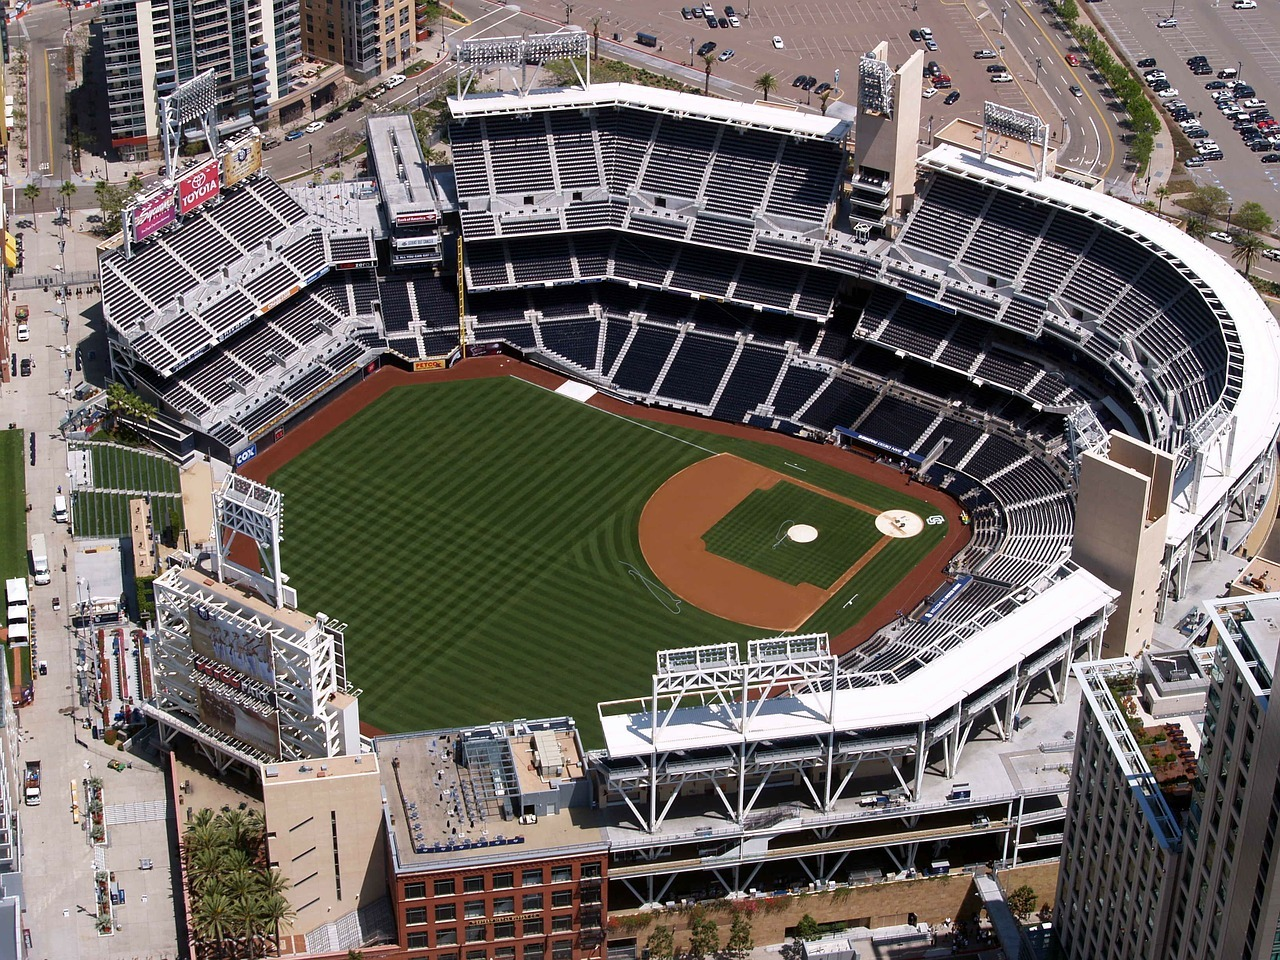 Petco Park Bag Policy and Luggage Storage Guide